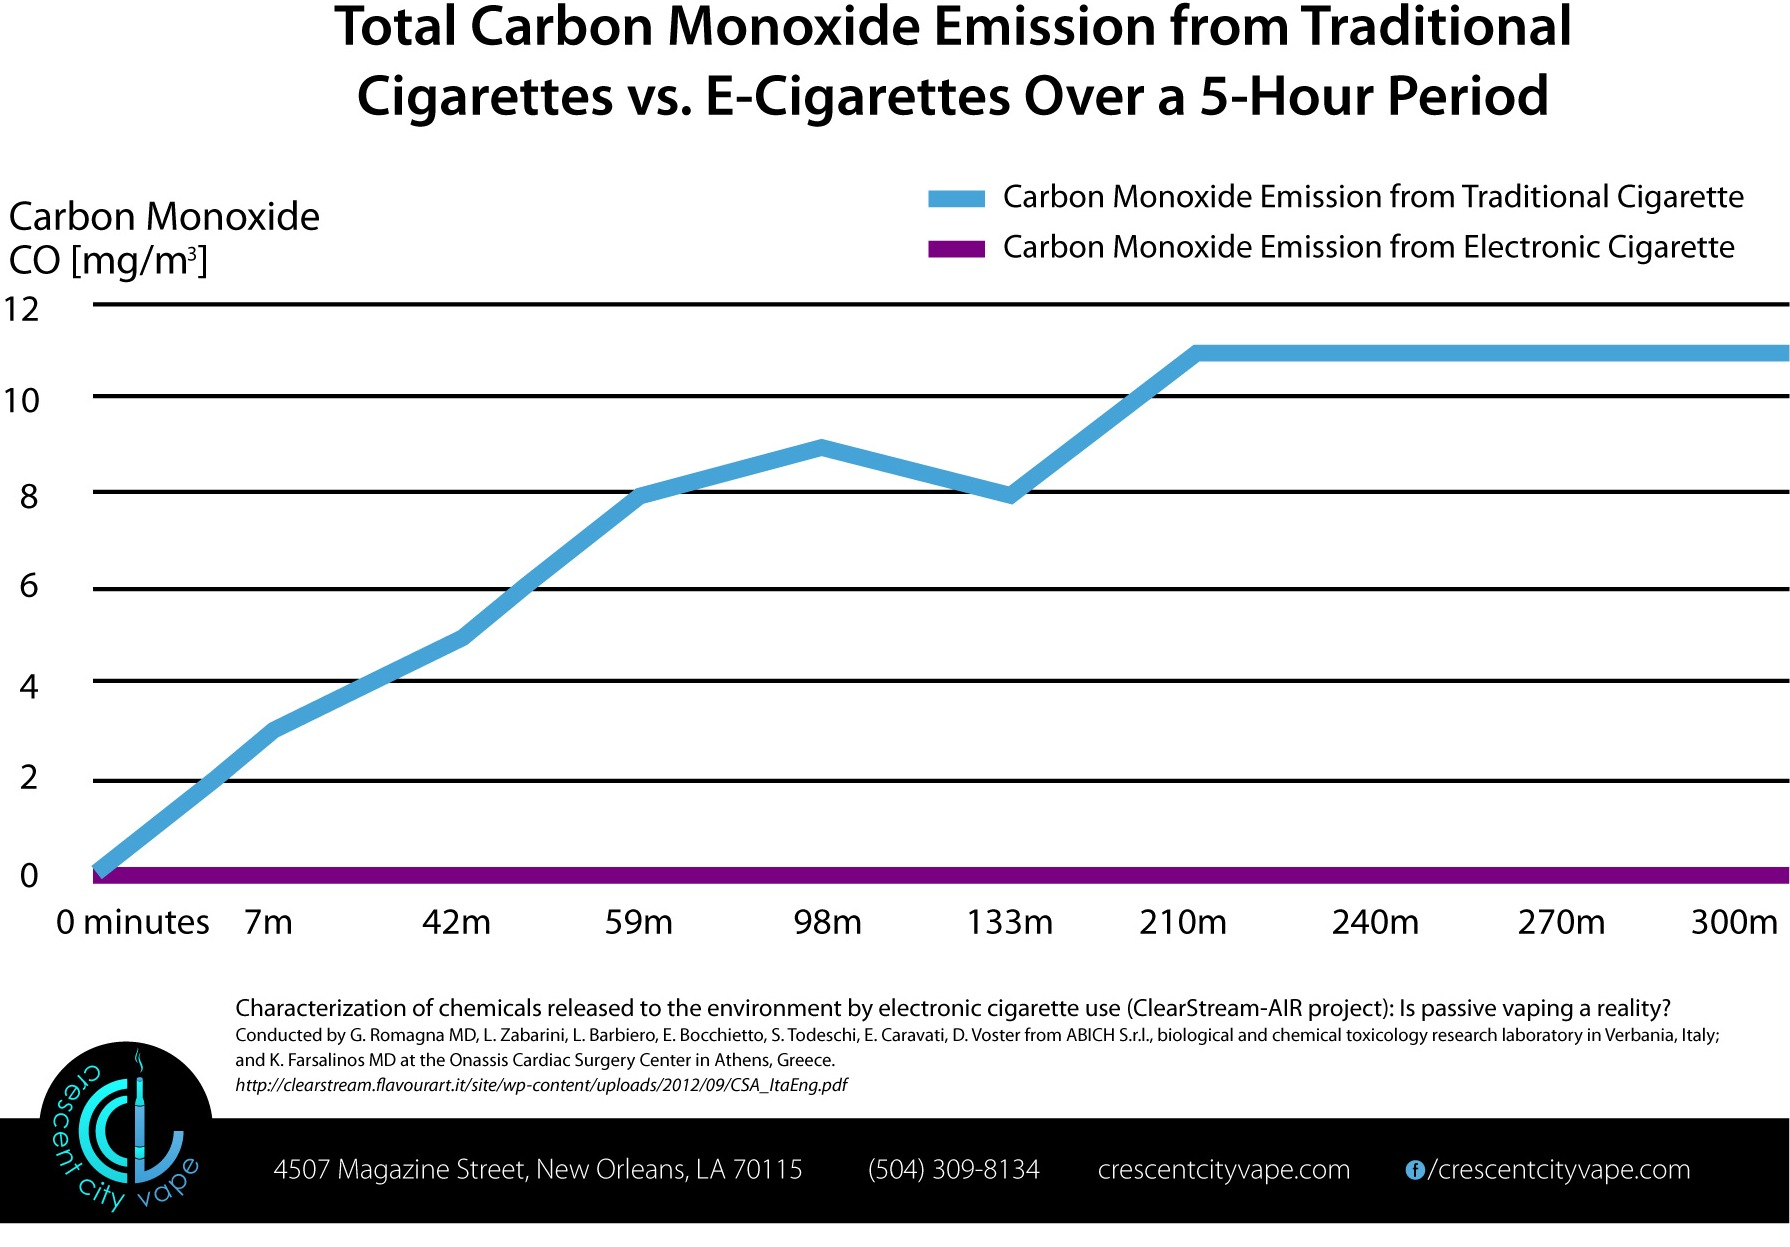 Carbon Monoxide Emission from Cigarettes vs. E-cigs